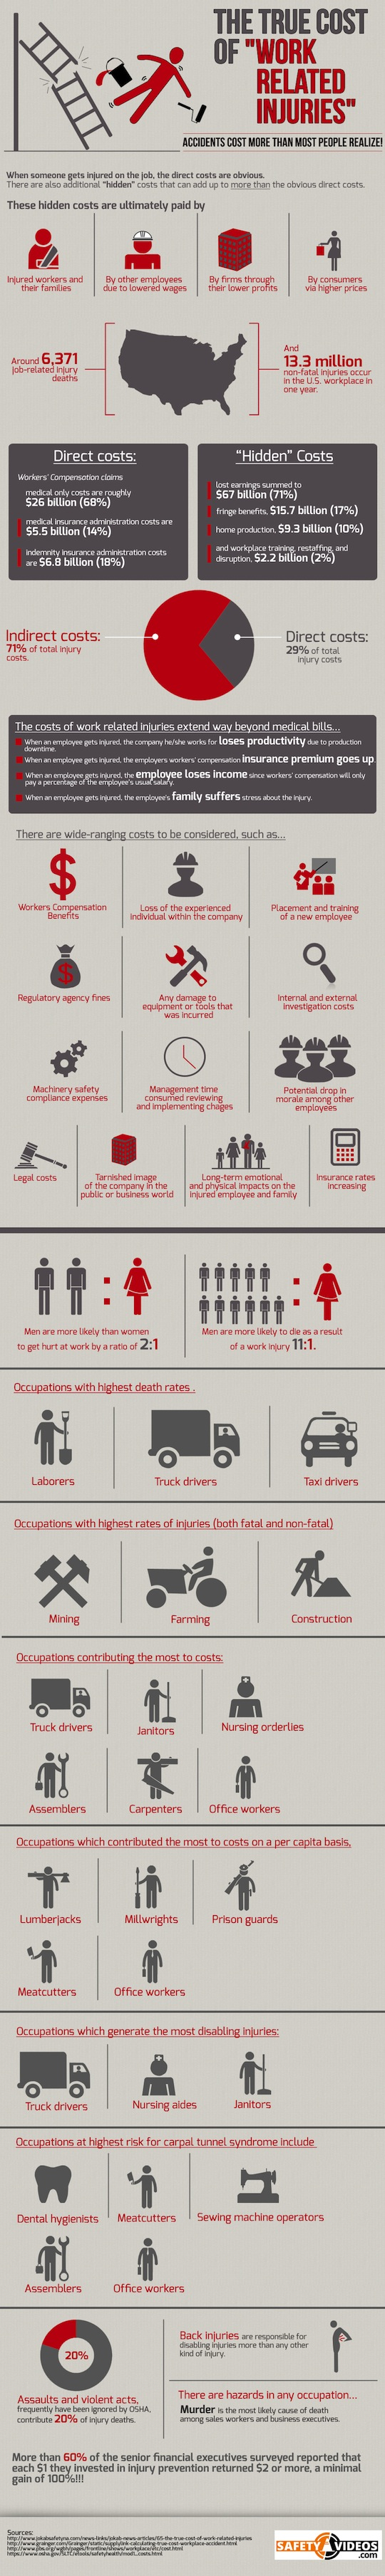 The Real Costs Of Work Related Injuries